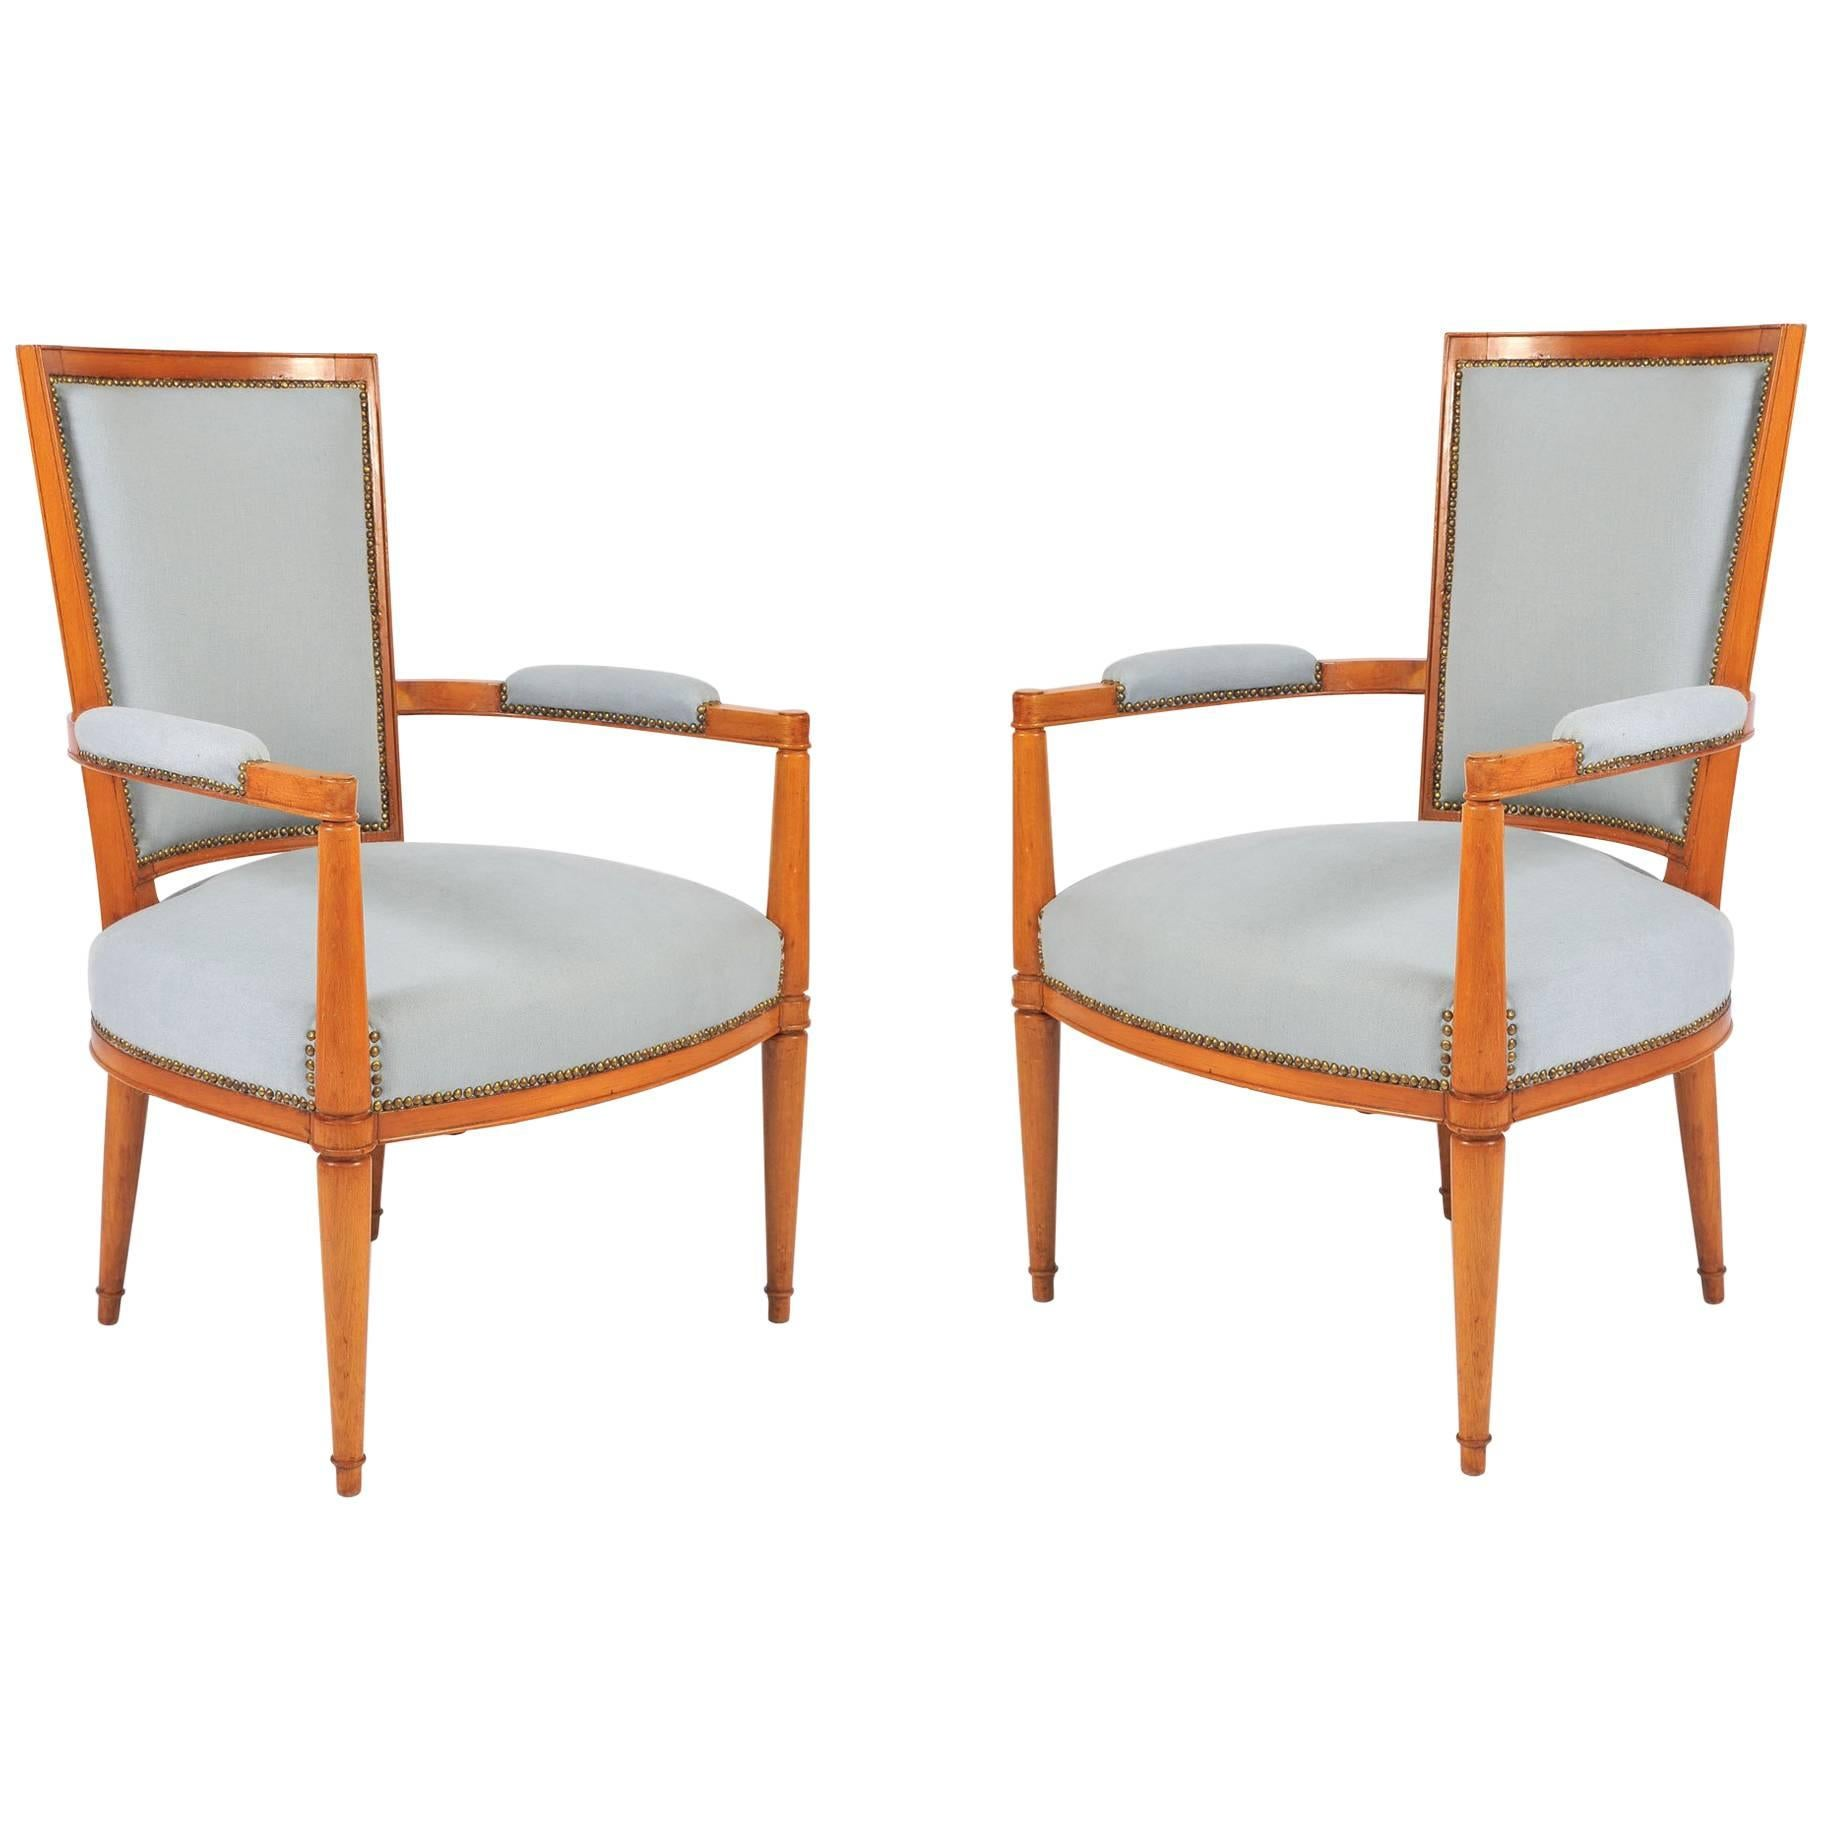 Charmant 1930s French Occasional Chairs By André Arbus For Sale